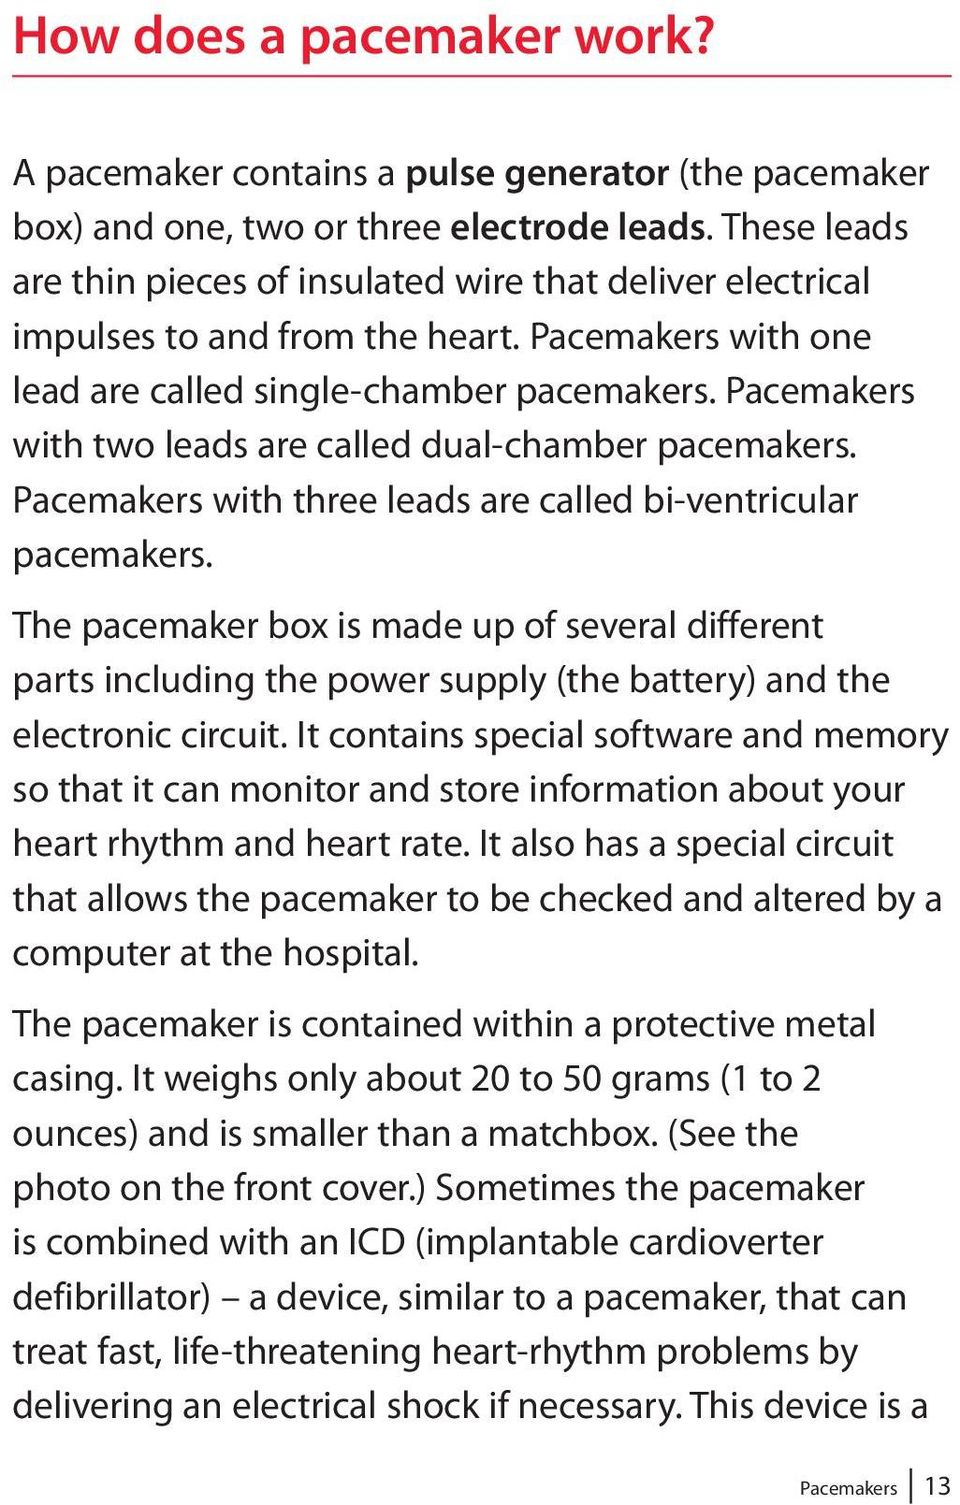 Pacemakers with two leads are called dual-chamber pacemakers. Pacemakers with three leads are called bi-ventricular pacemakers.